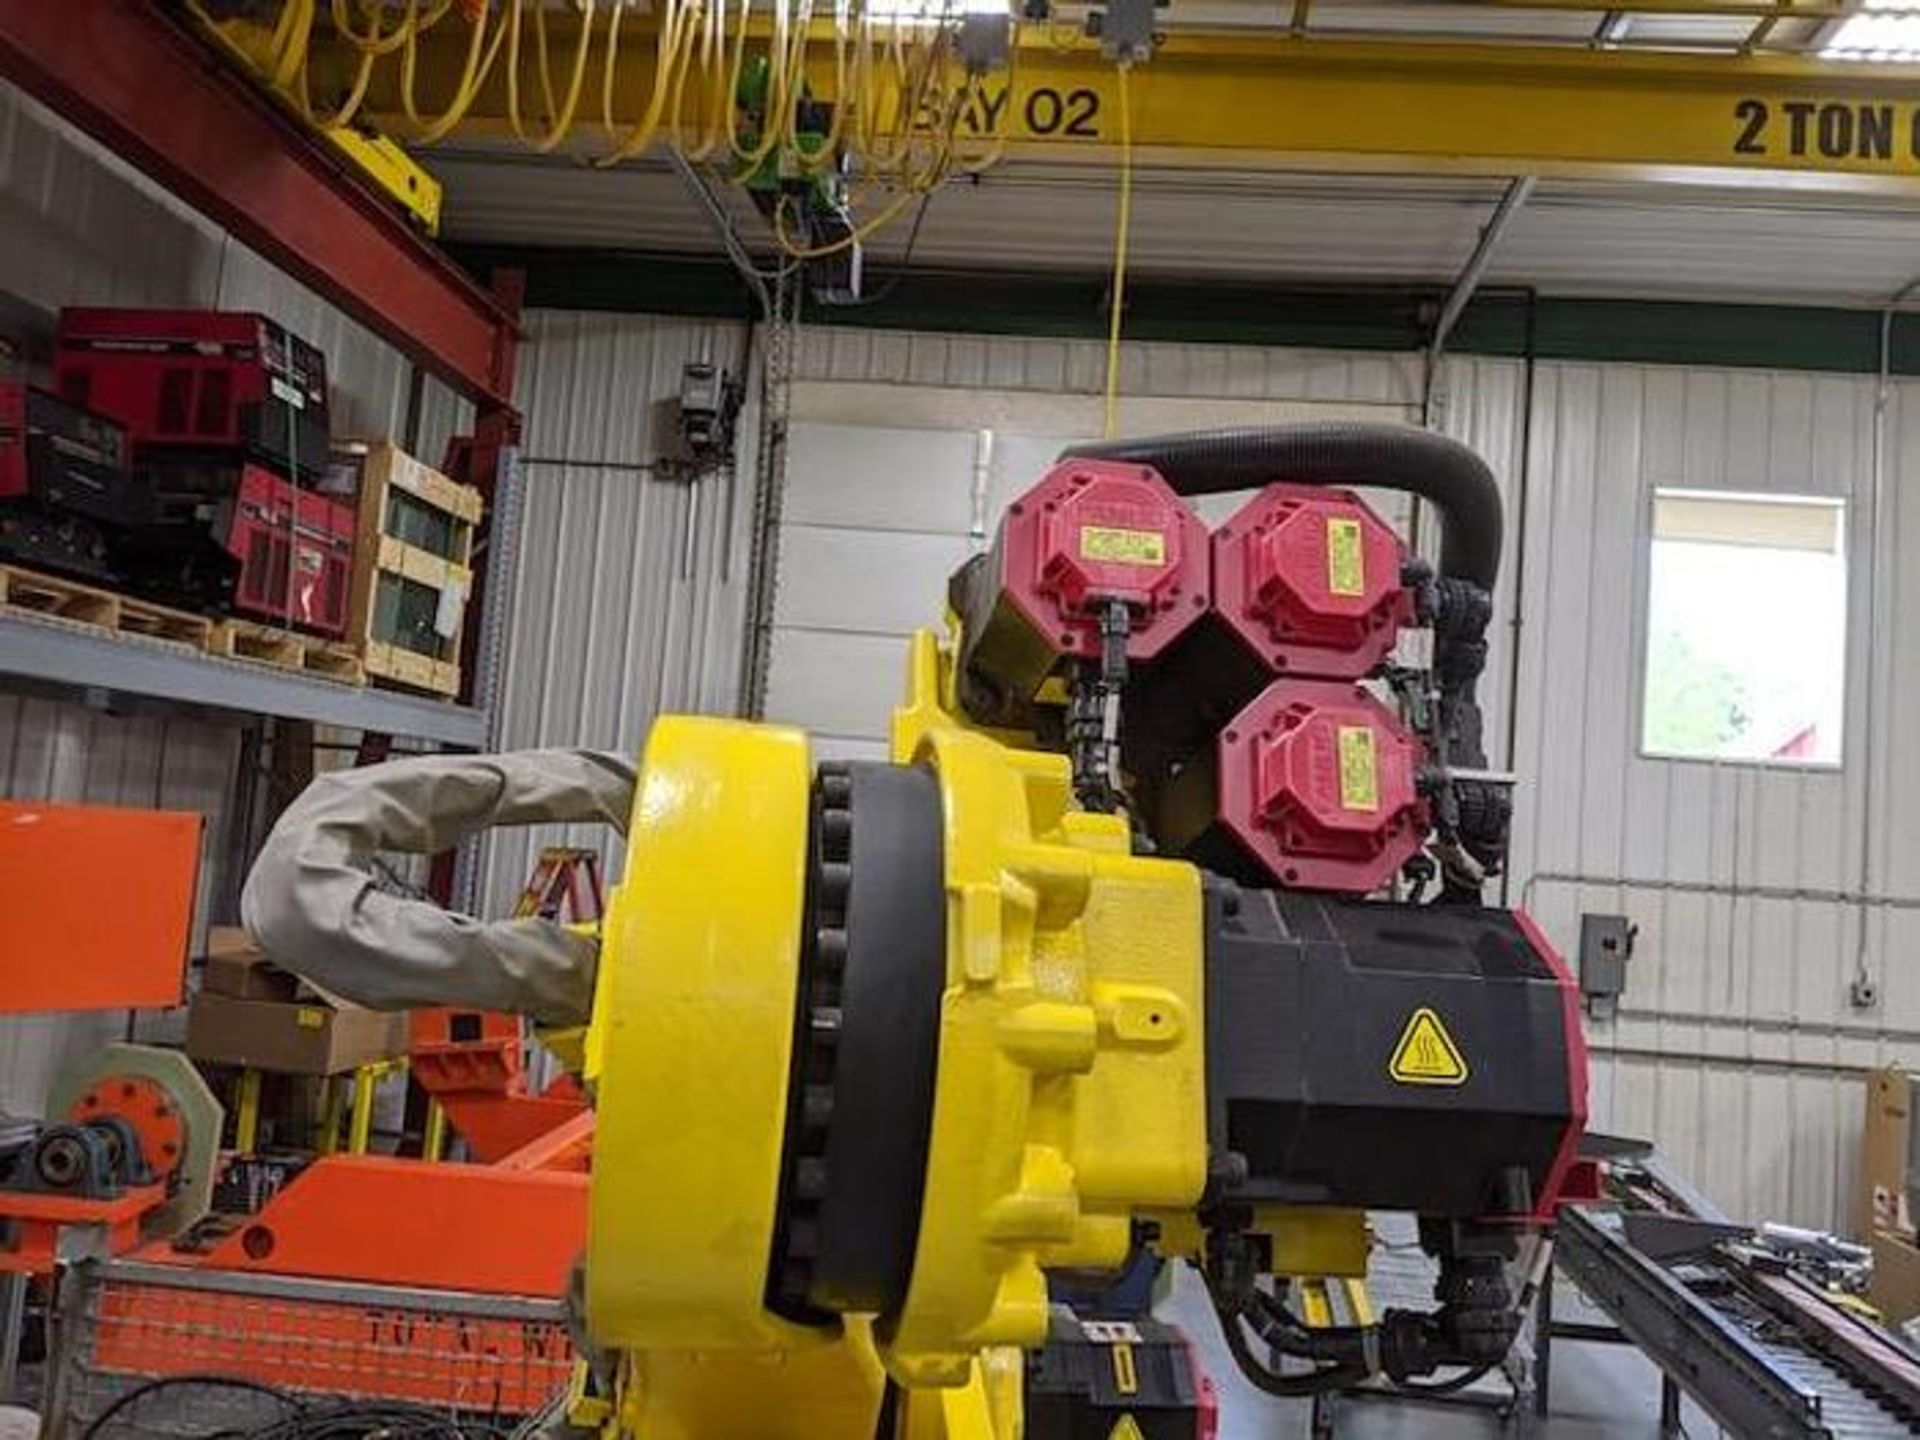 FANUC ROBOT R2000iC/125L 6 AXIS ROBOT WITH R30iB CONTROLLER, IR VISION, SN 194246, CABLES & TEACH - Image 10 of 19